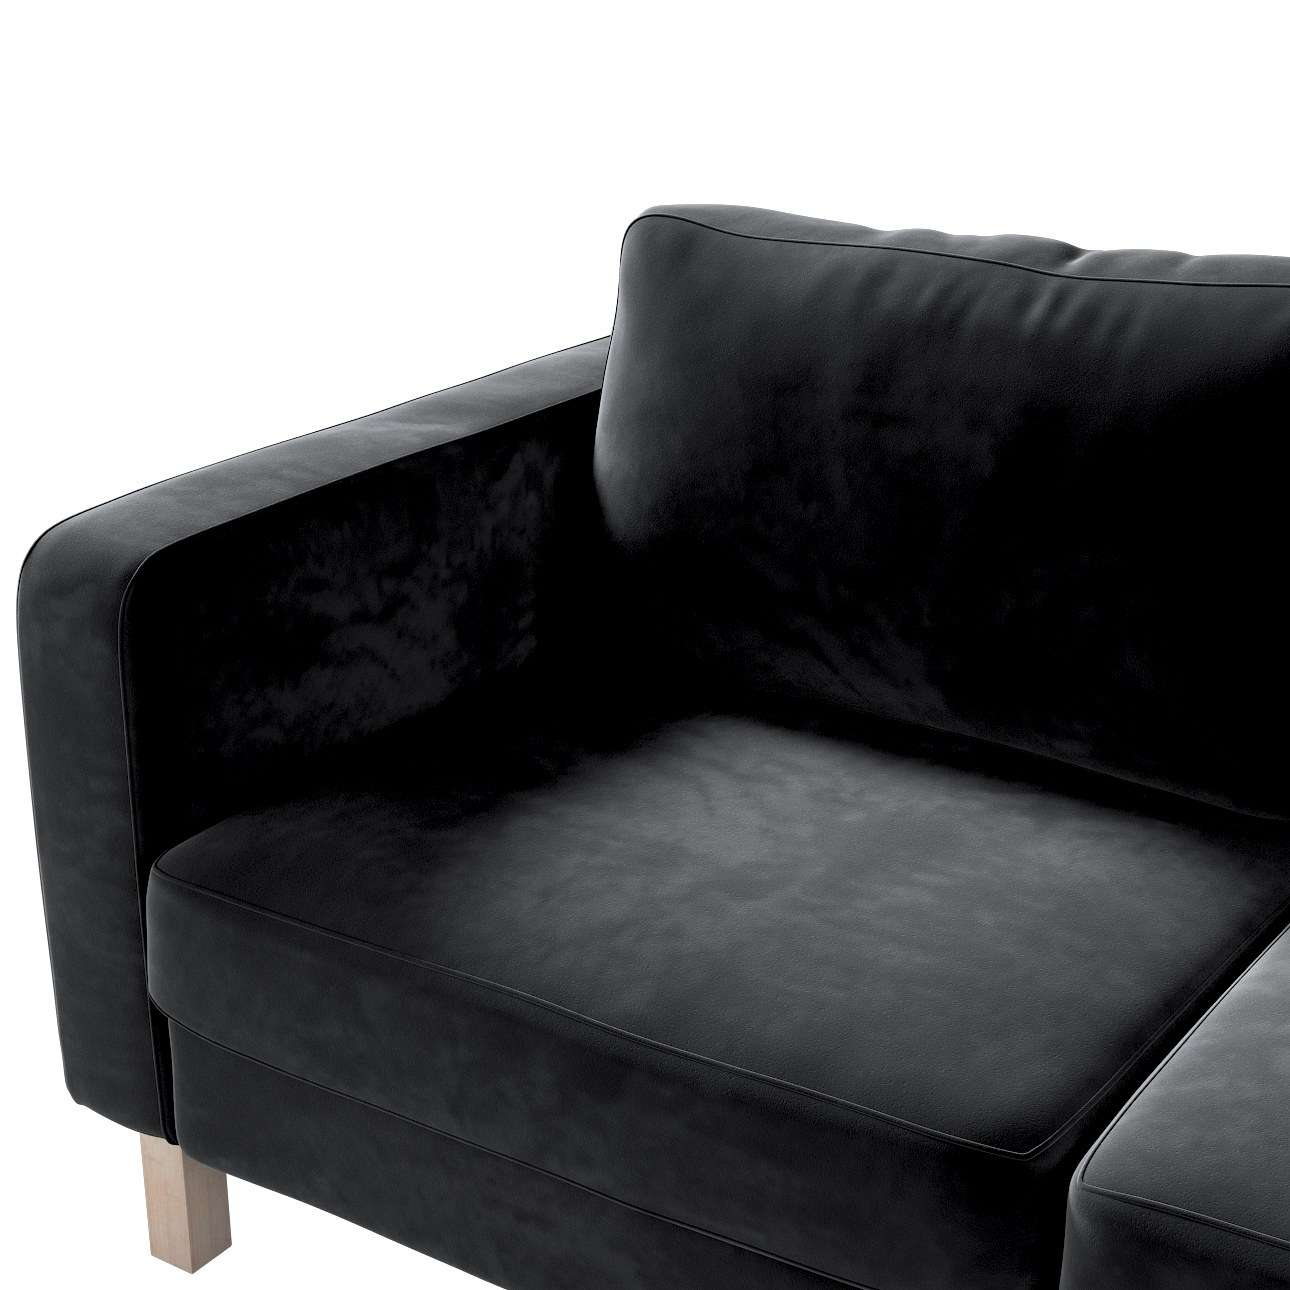 Karlstad 2-seater sofa cover in collection Velvet, fabric: 704-17